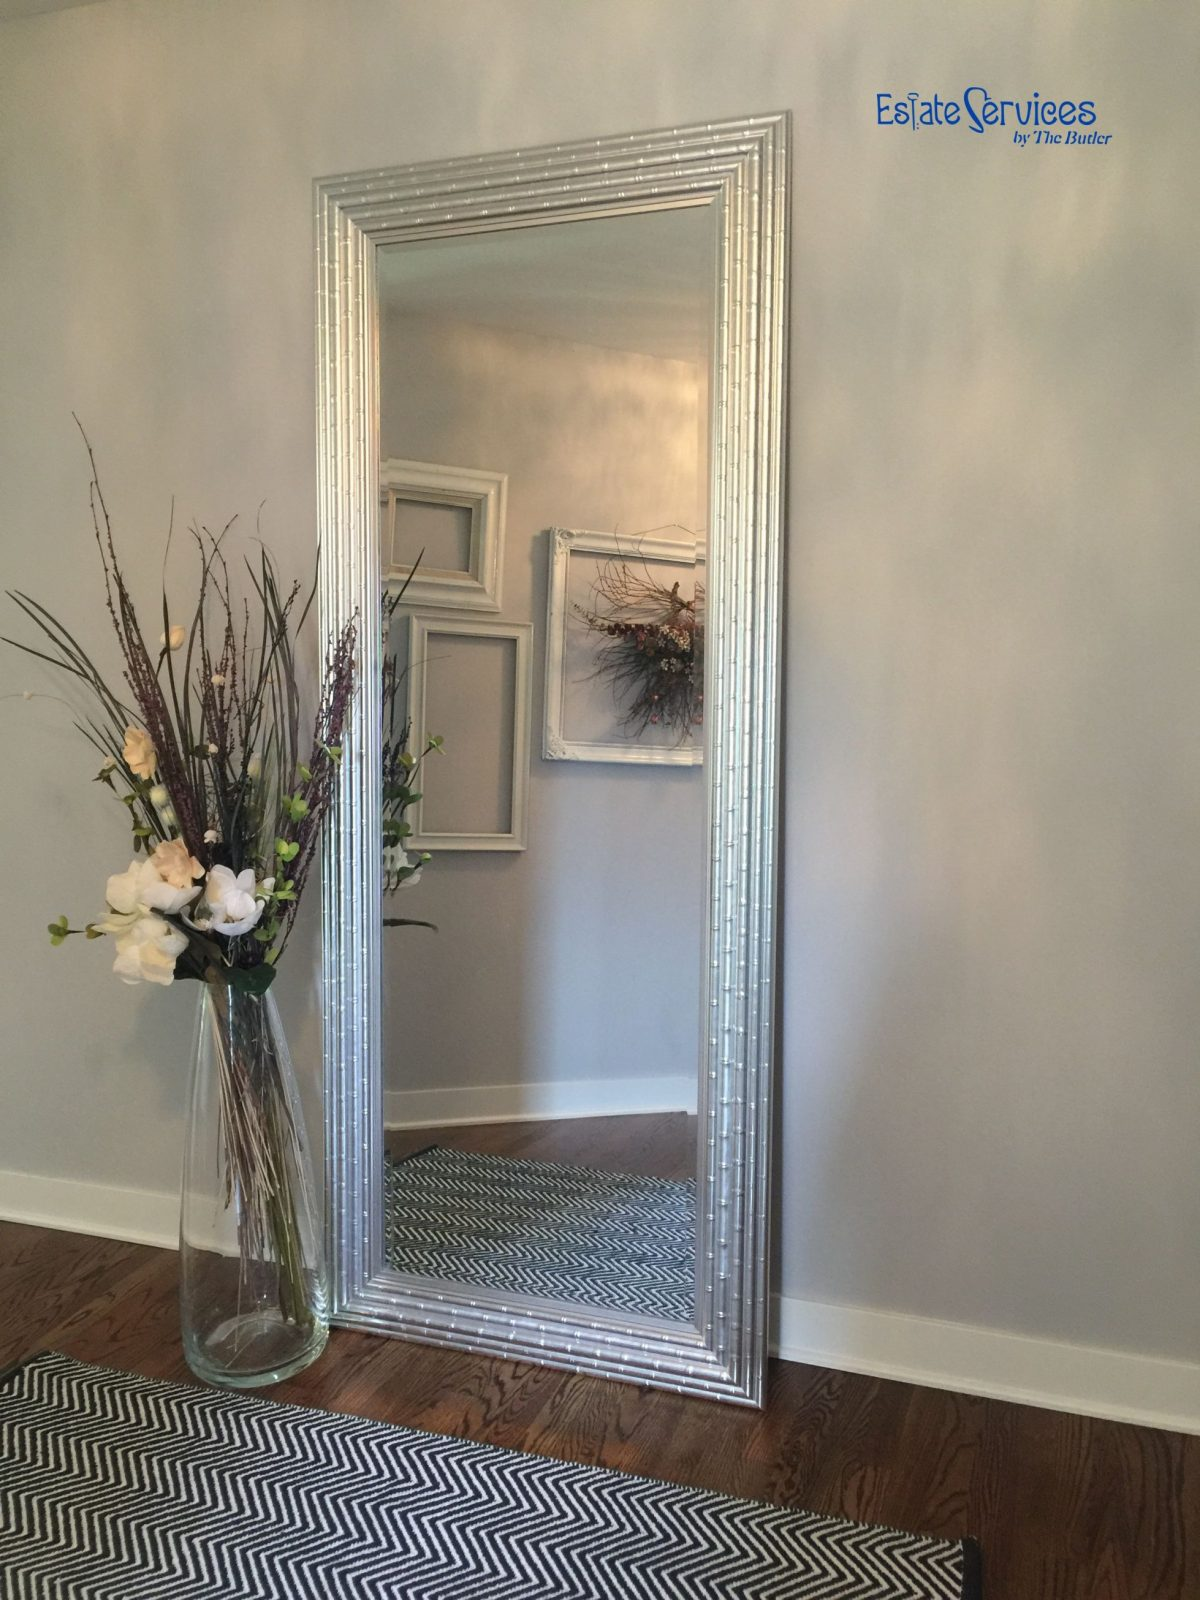 Simple Floor Accessory Tall Mirror For An Illusion For Added Space von Large White Floor Vase Bild